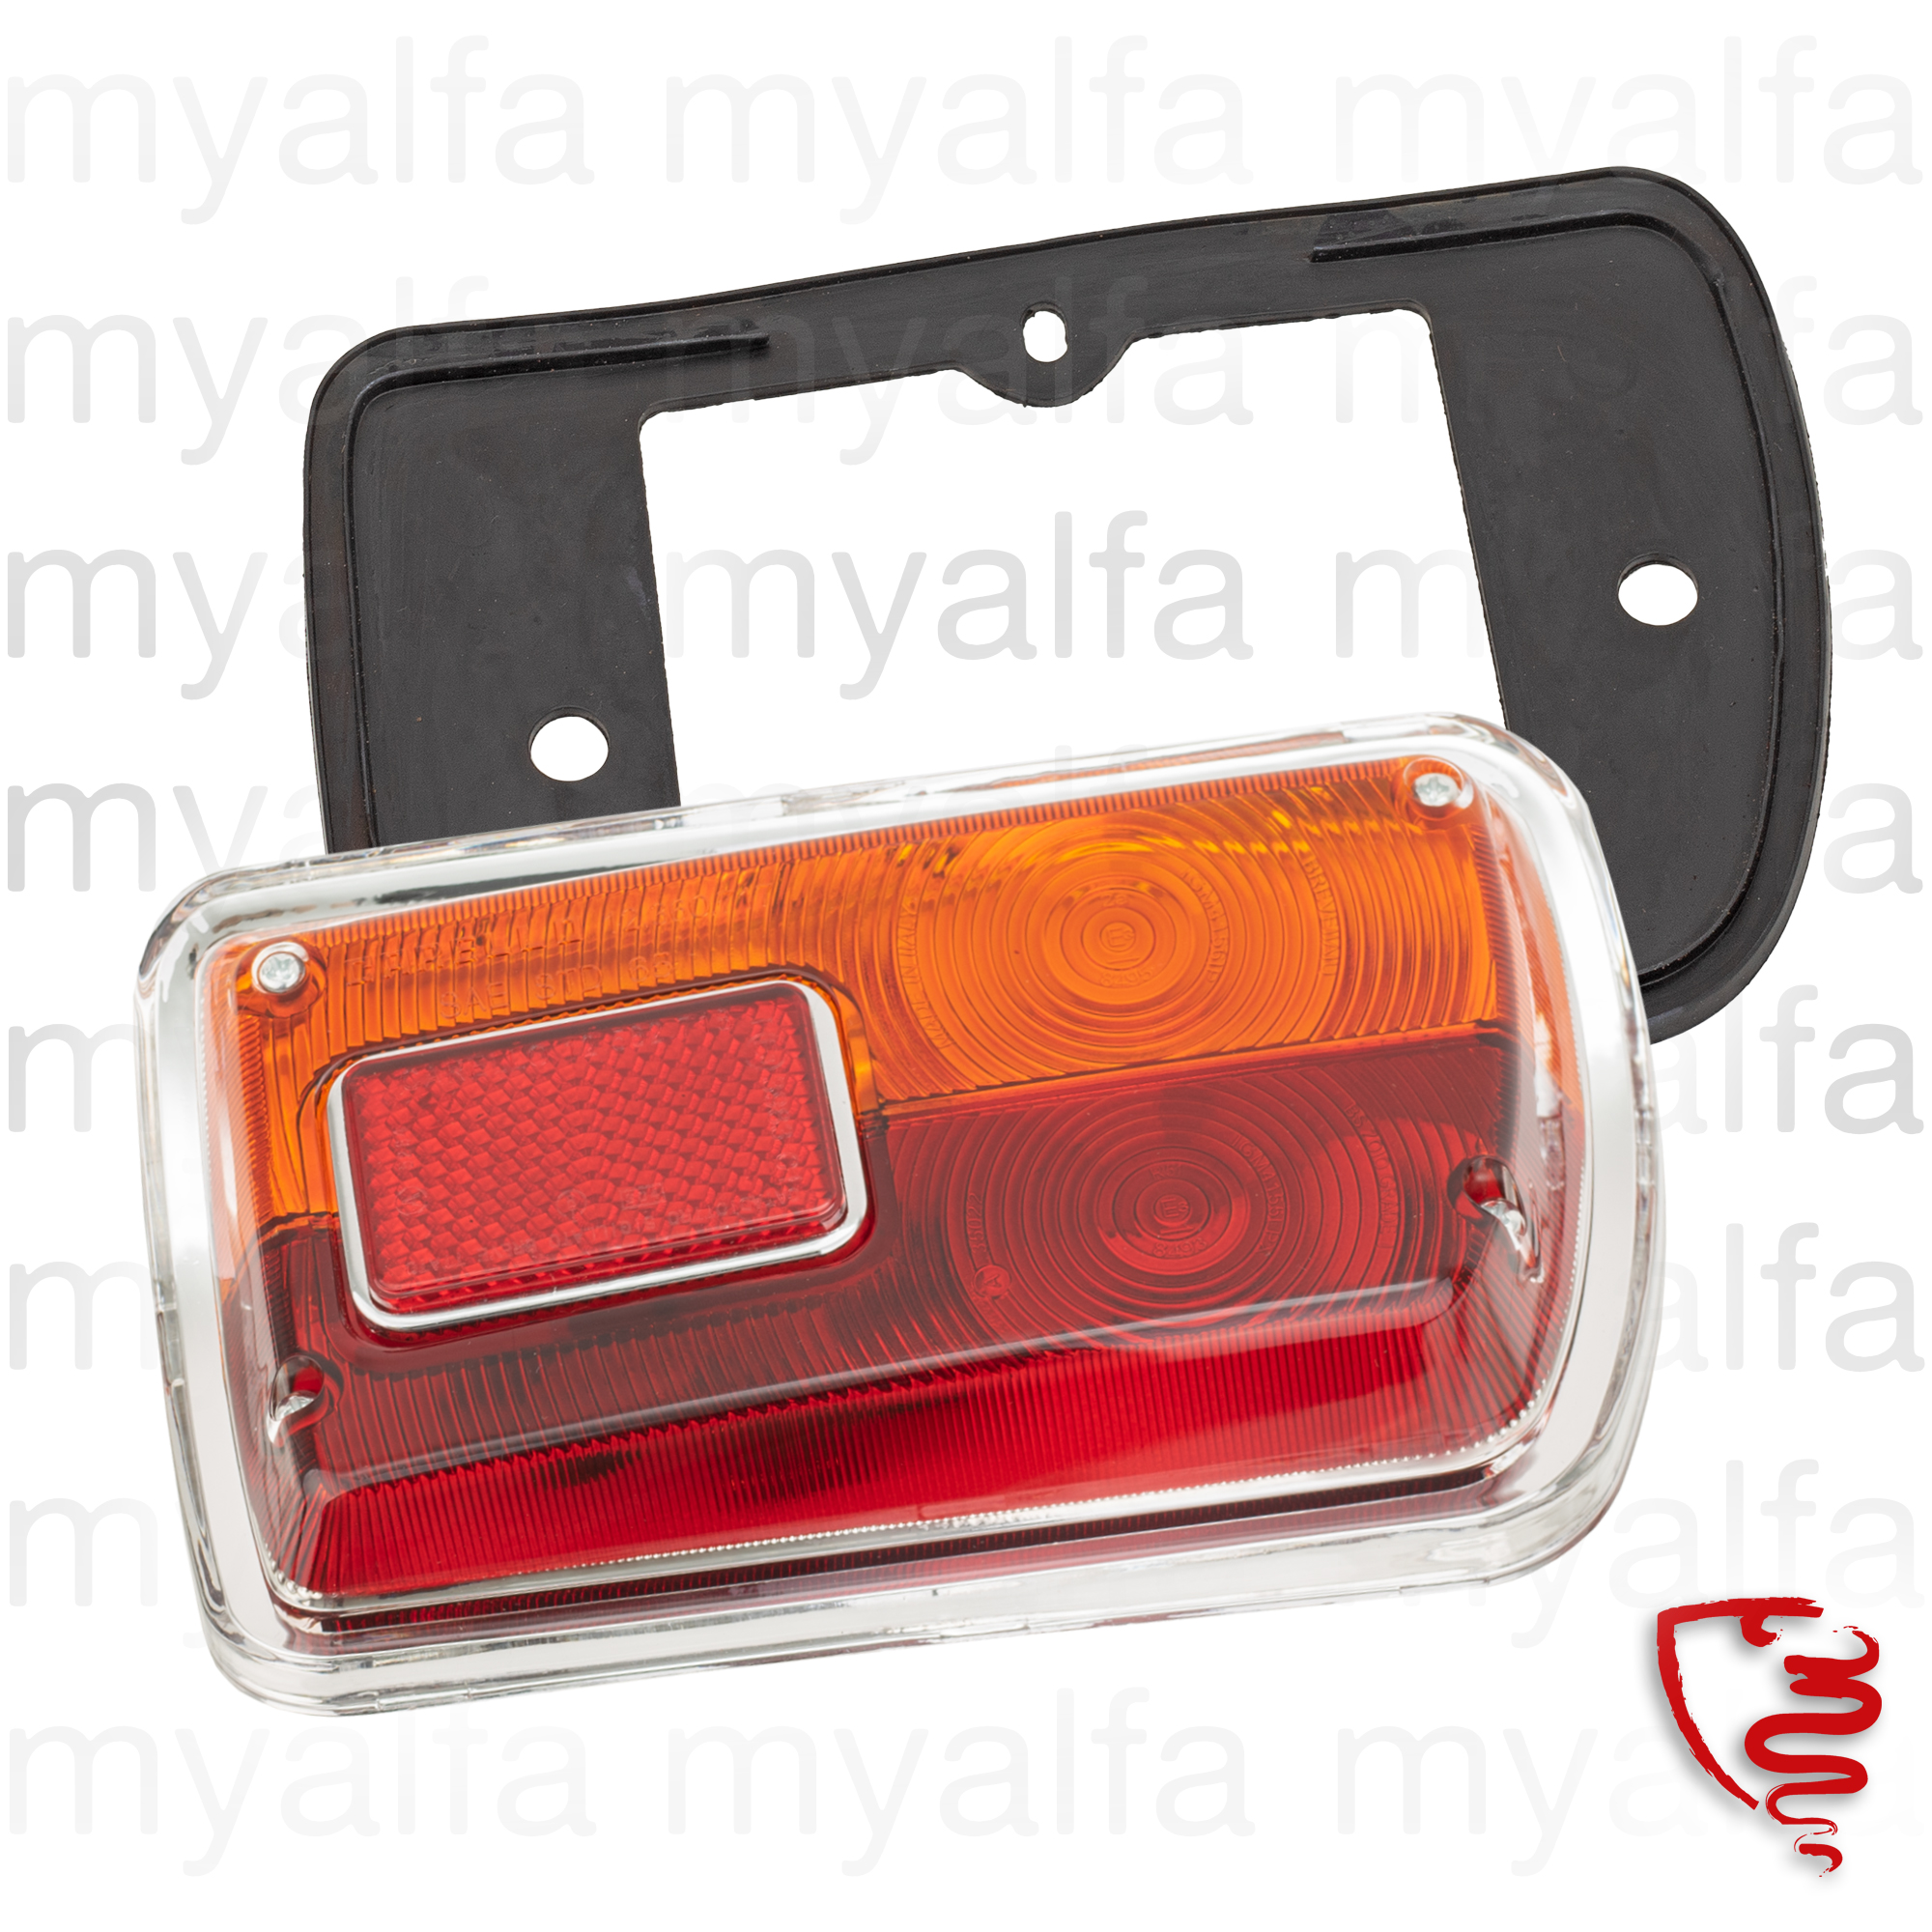 Farolim full back dt 1300 - 1750 series2 - plastic base for 105/115, Coupe, Body parts, Lighting, Tail lights